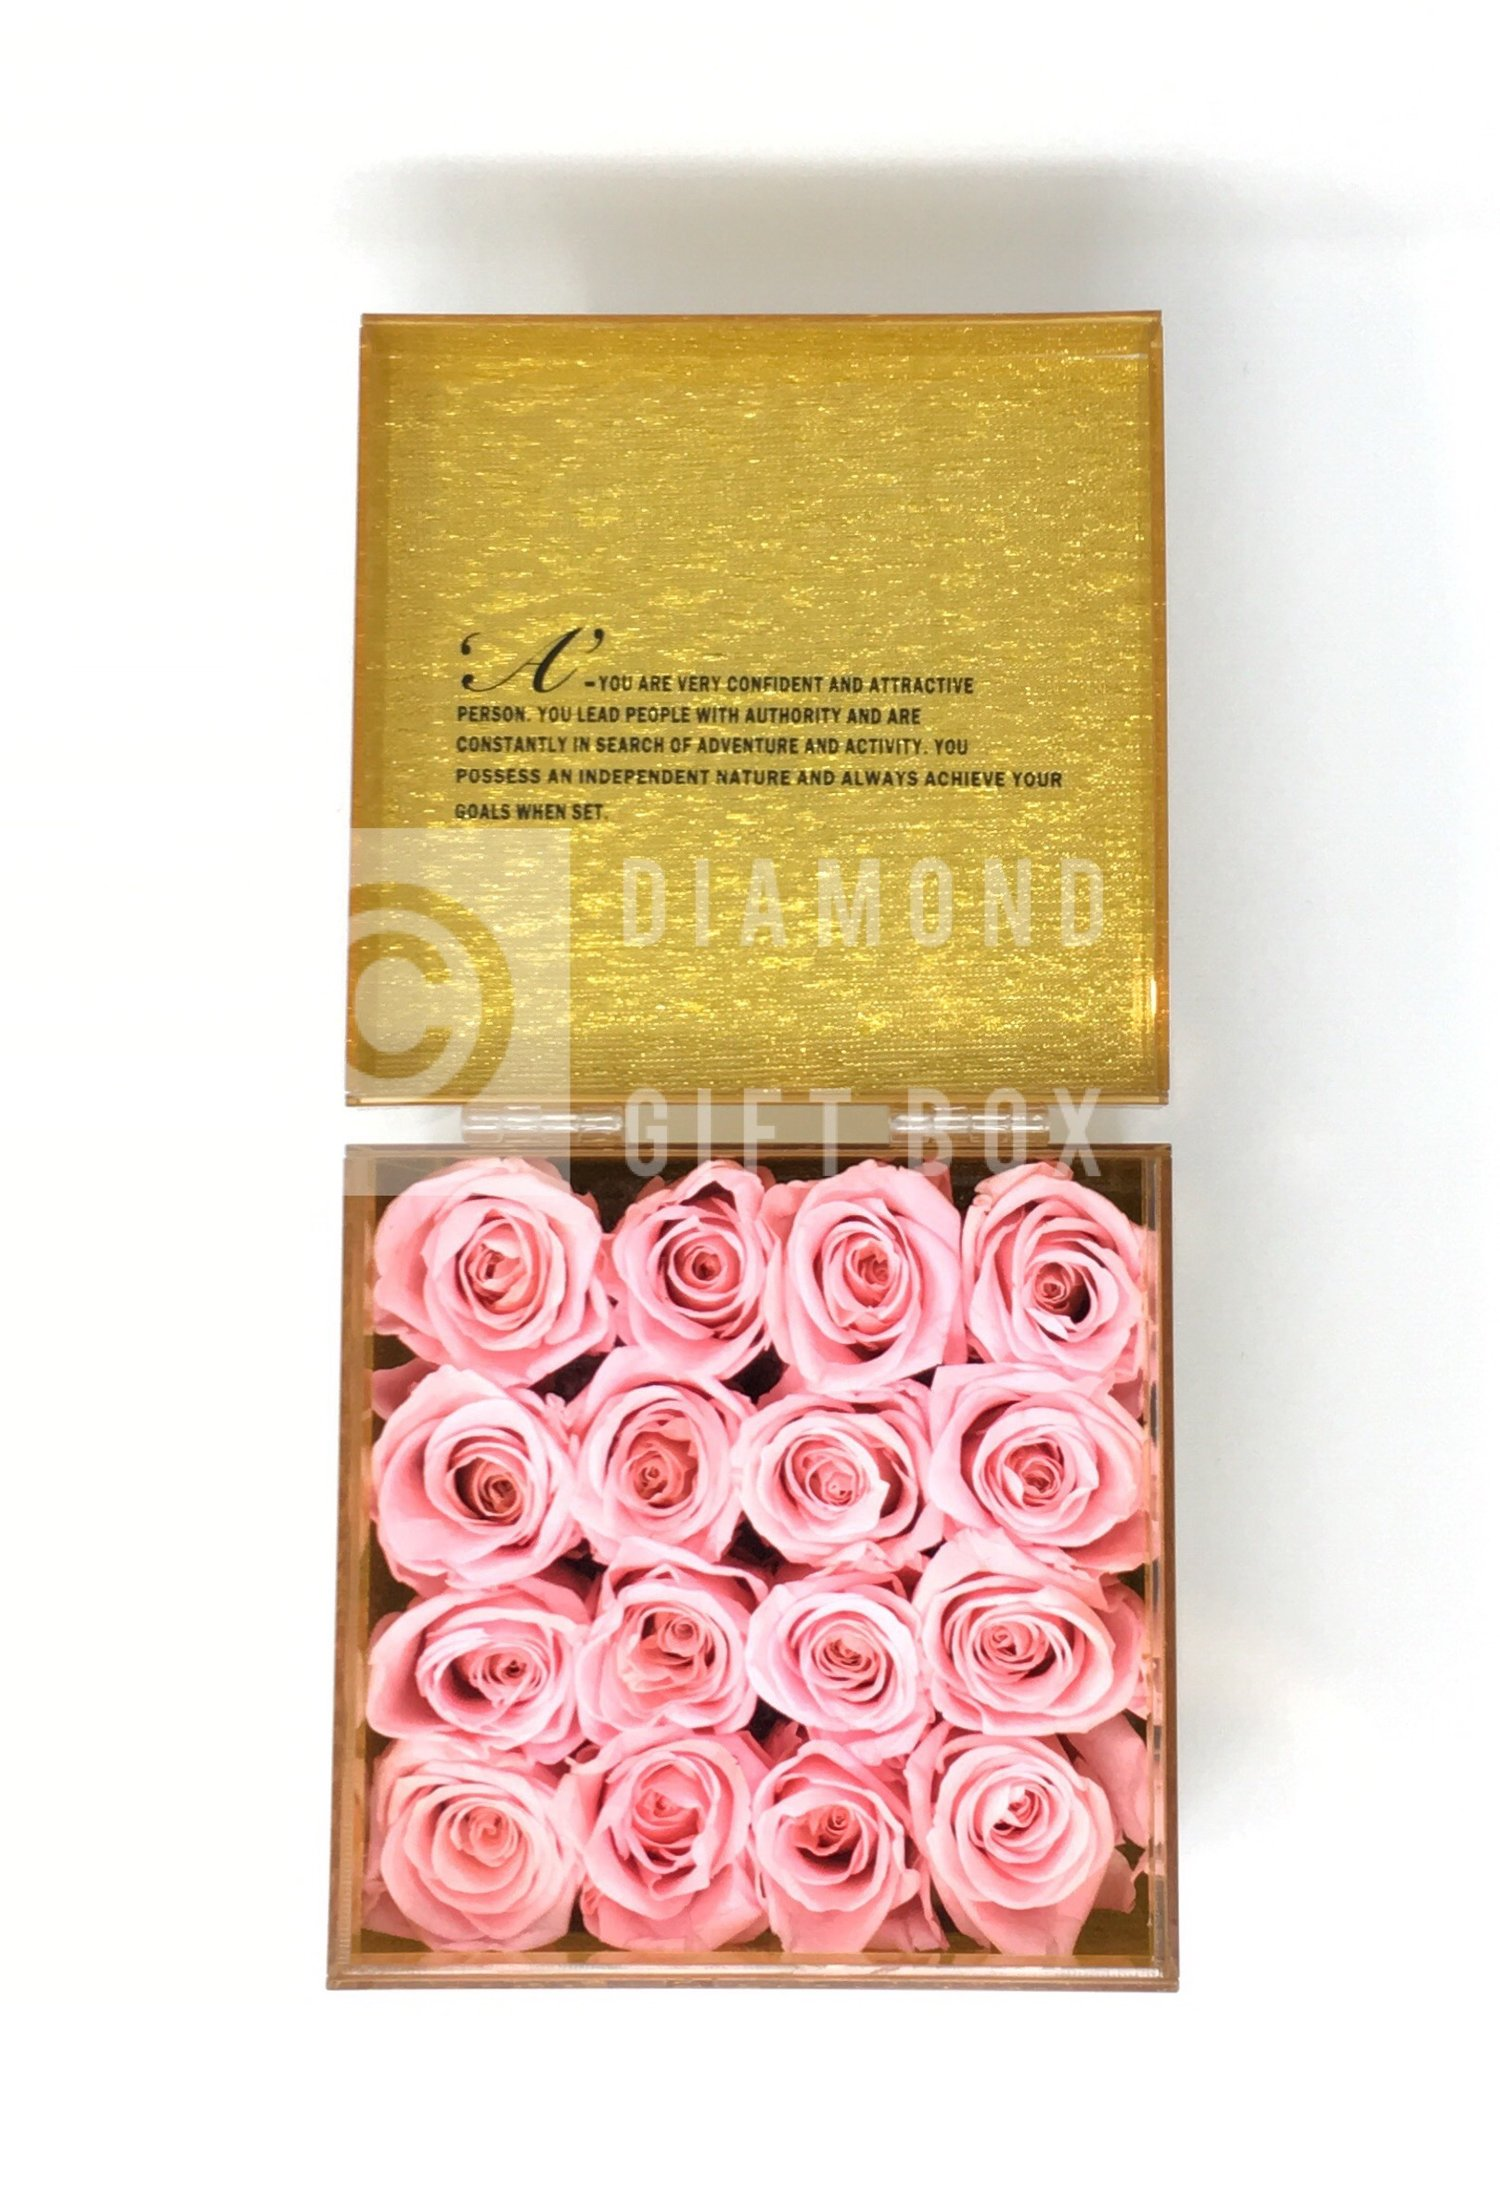 Diamond Gift Box-A-Z NAME BOX - 9/16 ROSES - PLAIN ROSE COLOR